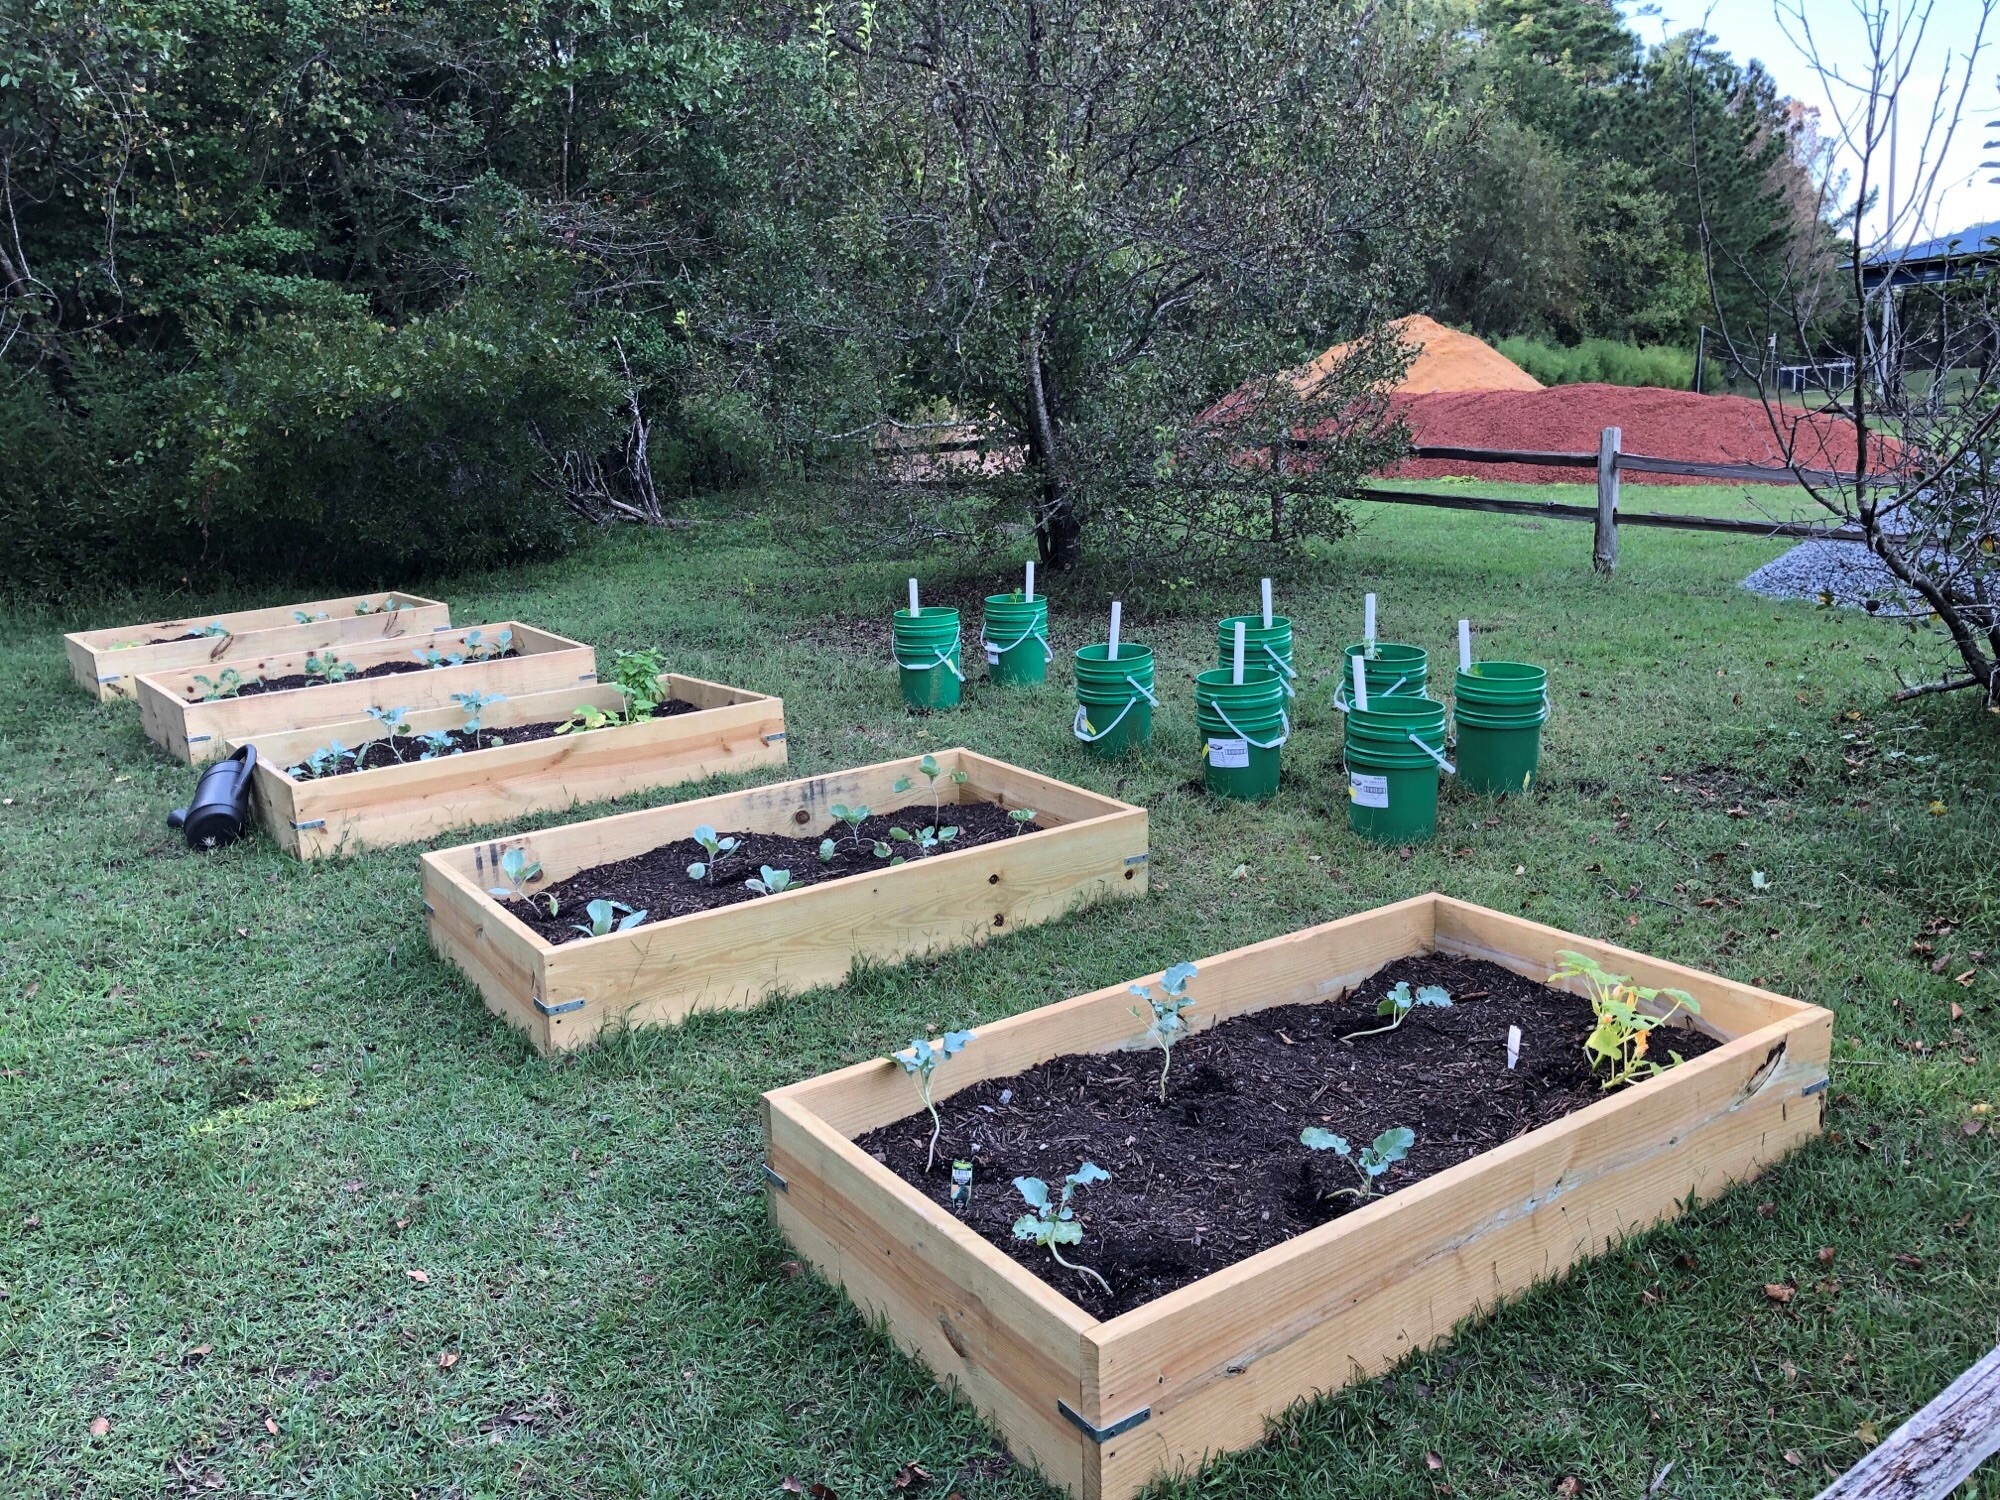 The APA garden uses raised beds and buckets to cultivate a range of cool weather vegetables.